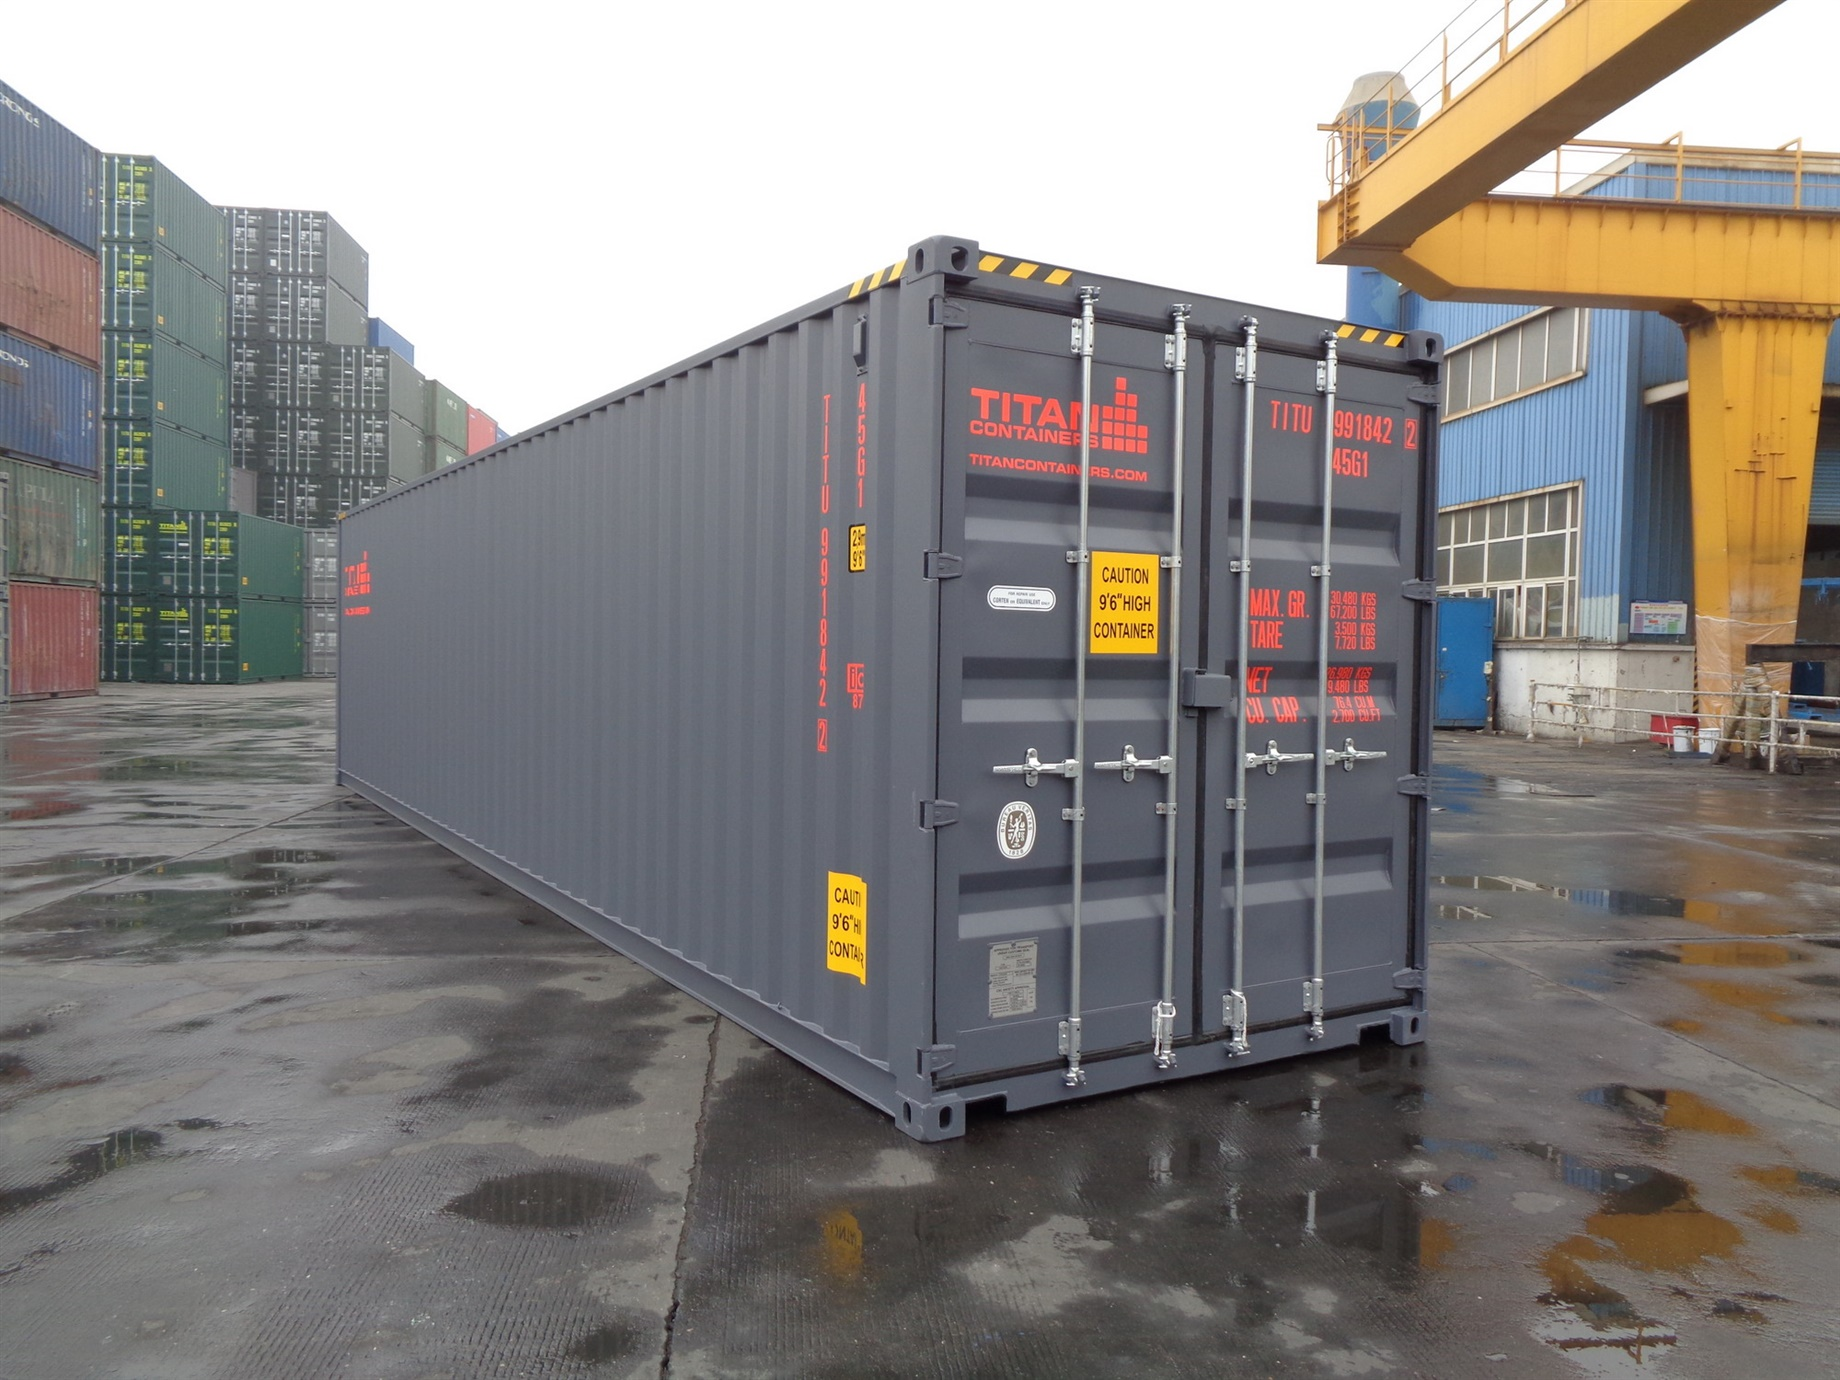 40 foot HC High Cube gray storage container titan containers